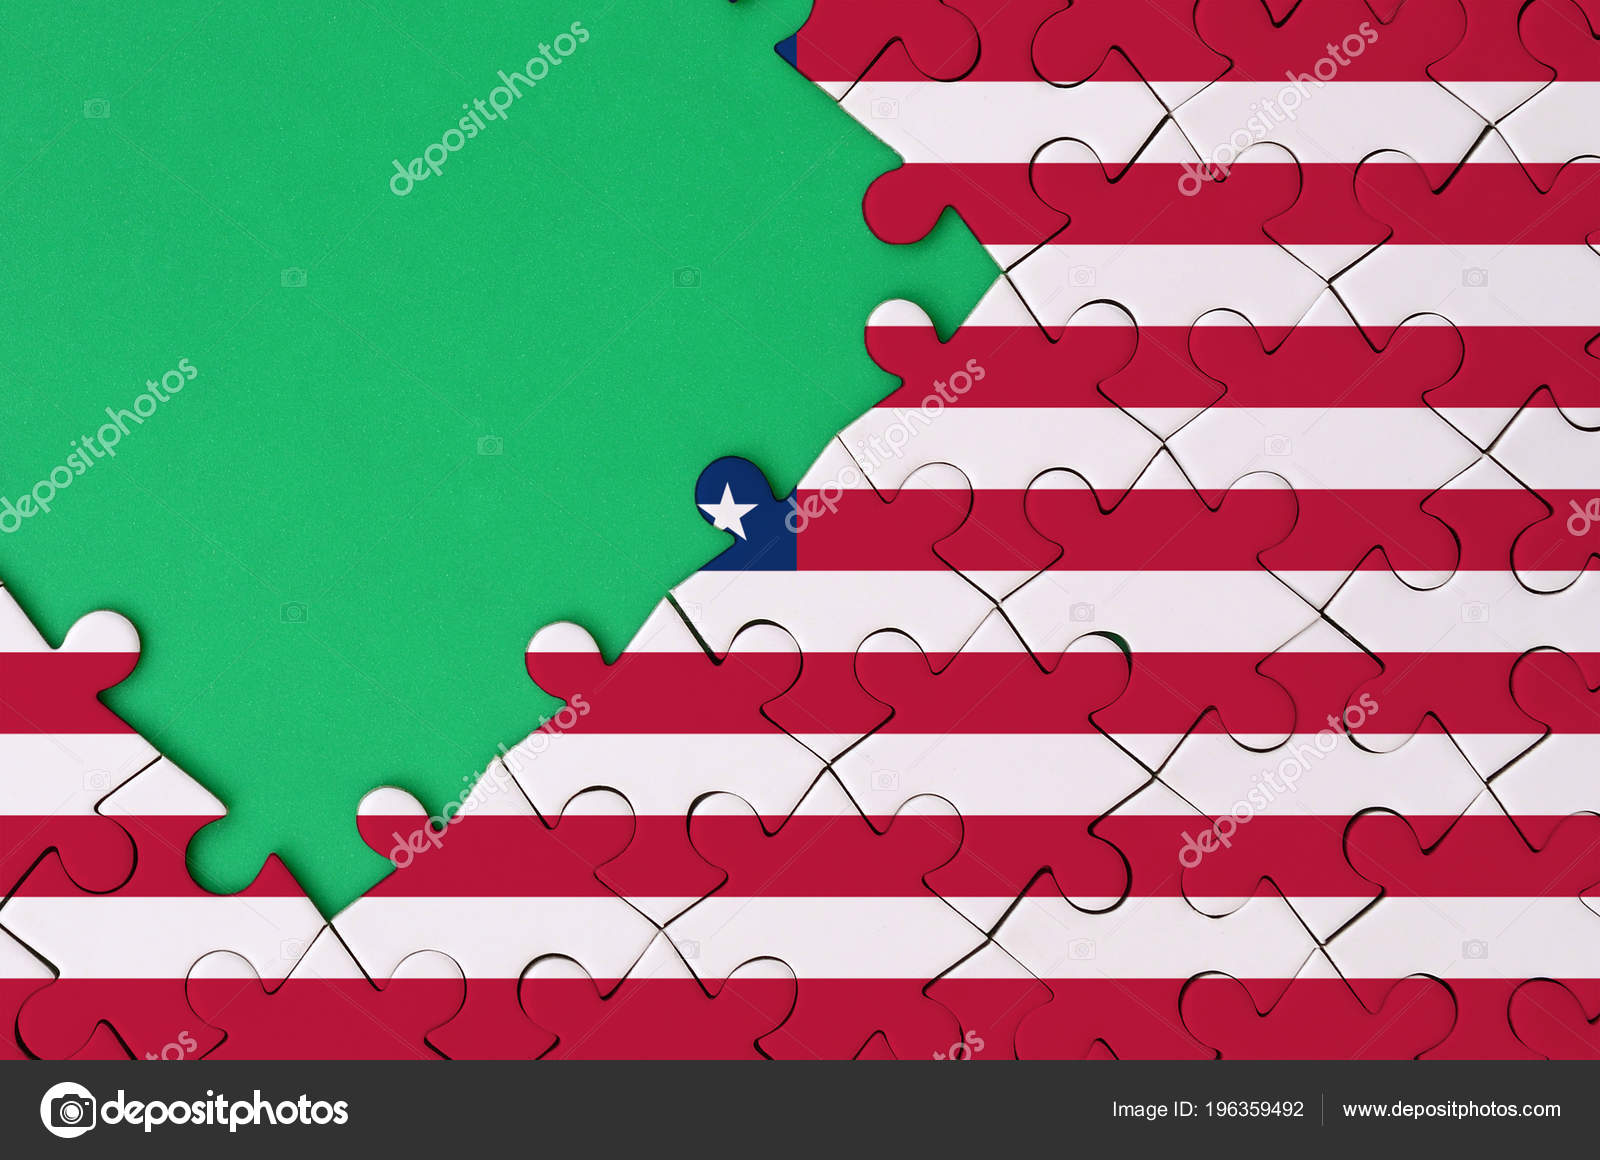 United States America Flag Depicted Completed Jigsaw Puzzle Free Green Stock P O